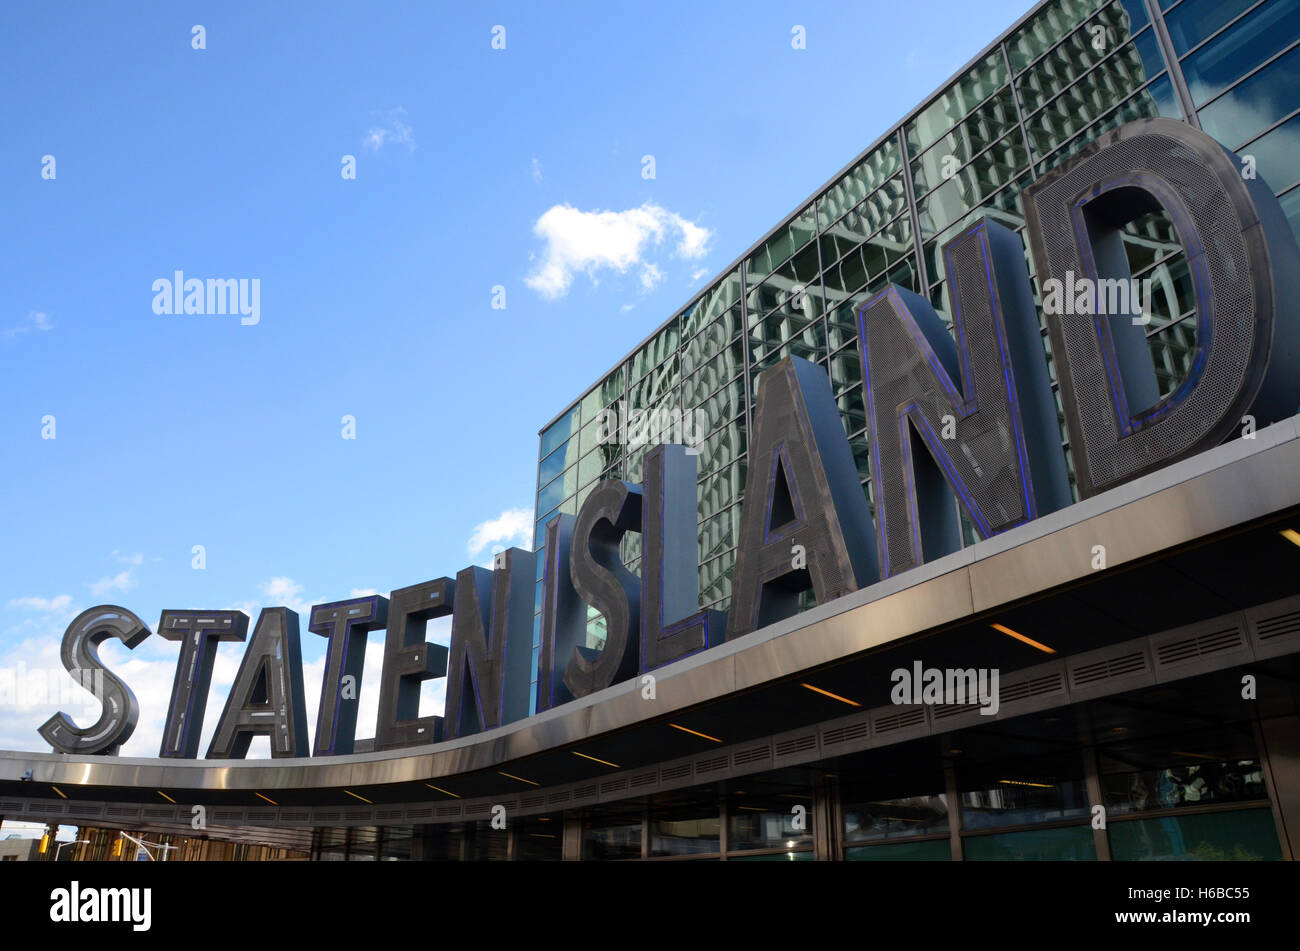 staten island ferry terminal building sign on sunny day blue sky metal with neon lights simon leigh - Stock Image